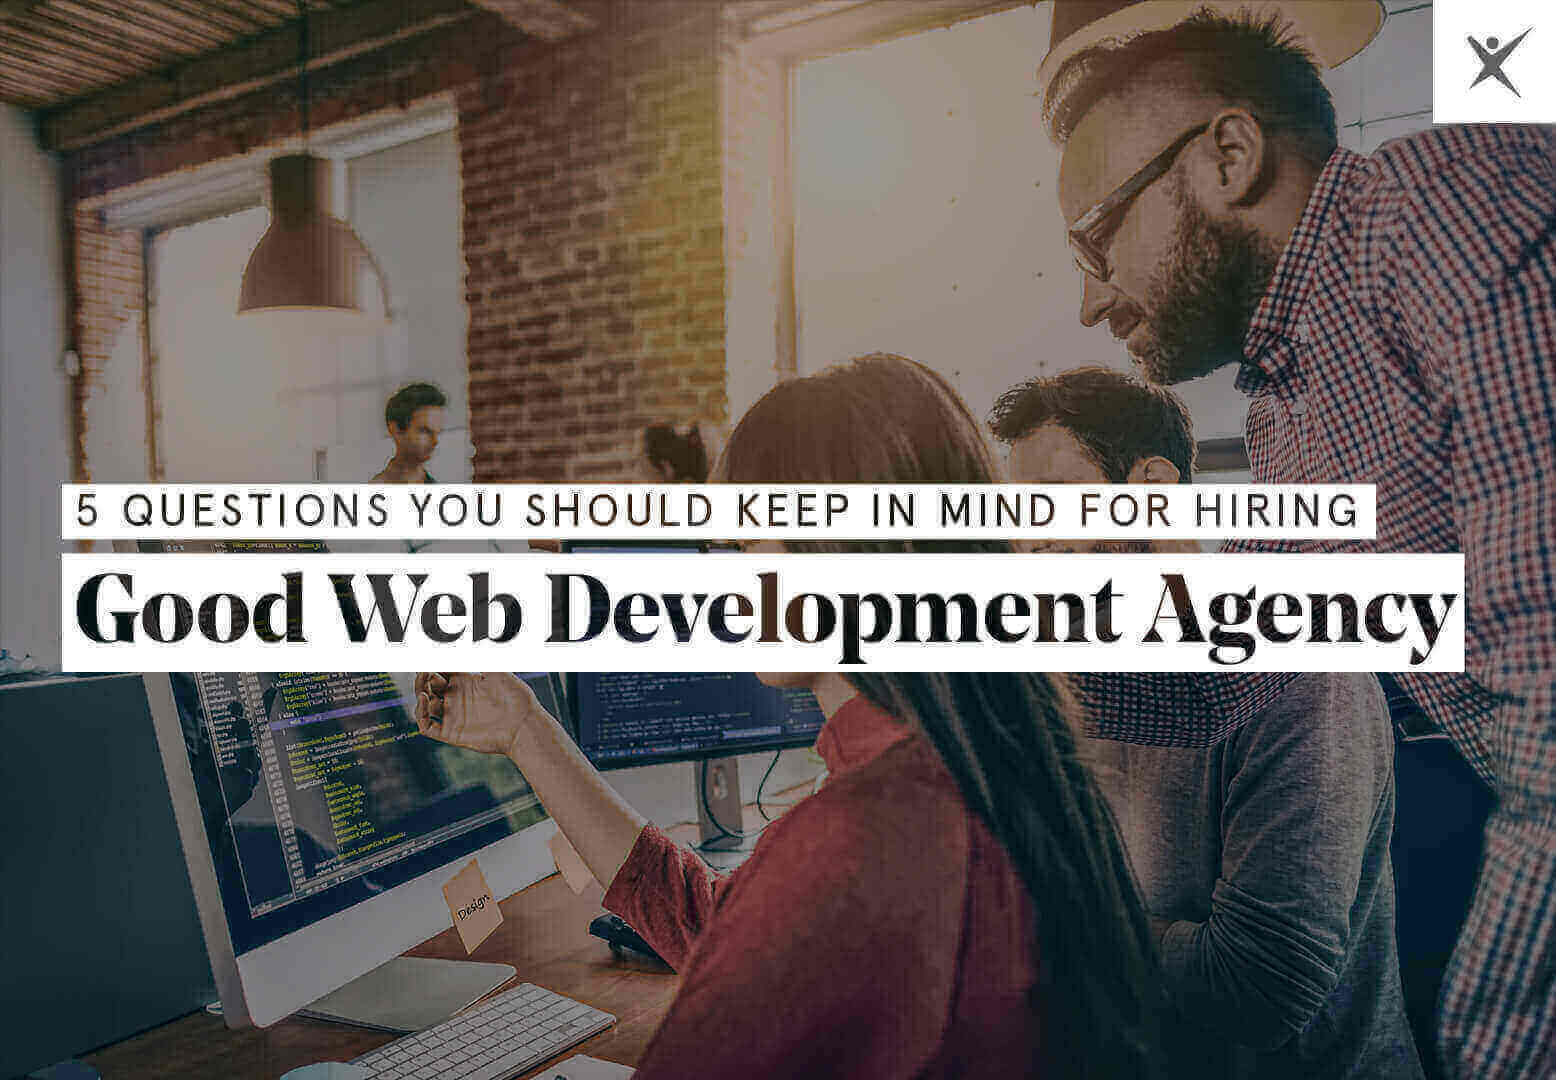 5 Questions You Should Keep in Mind for Hiring Good Web Development Agency